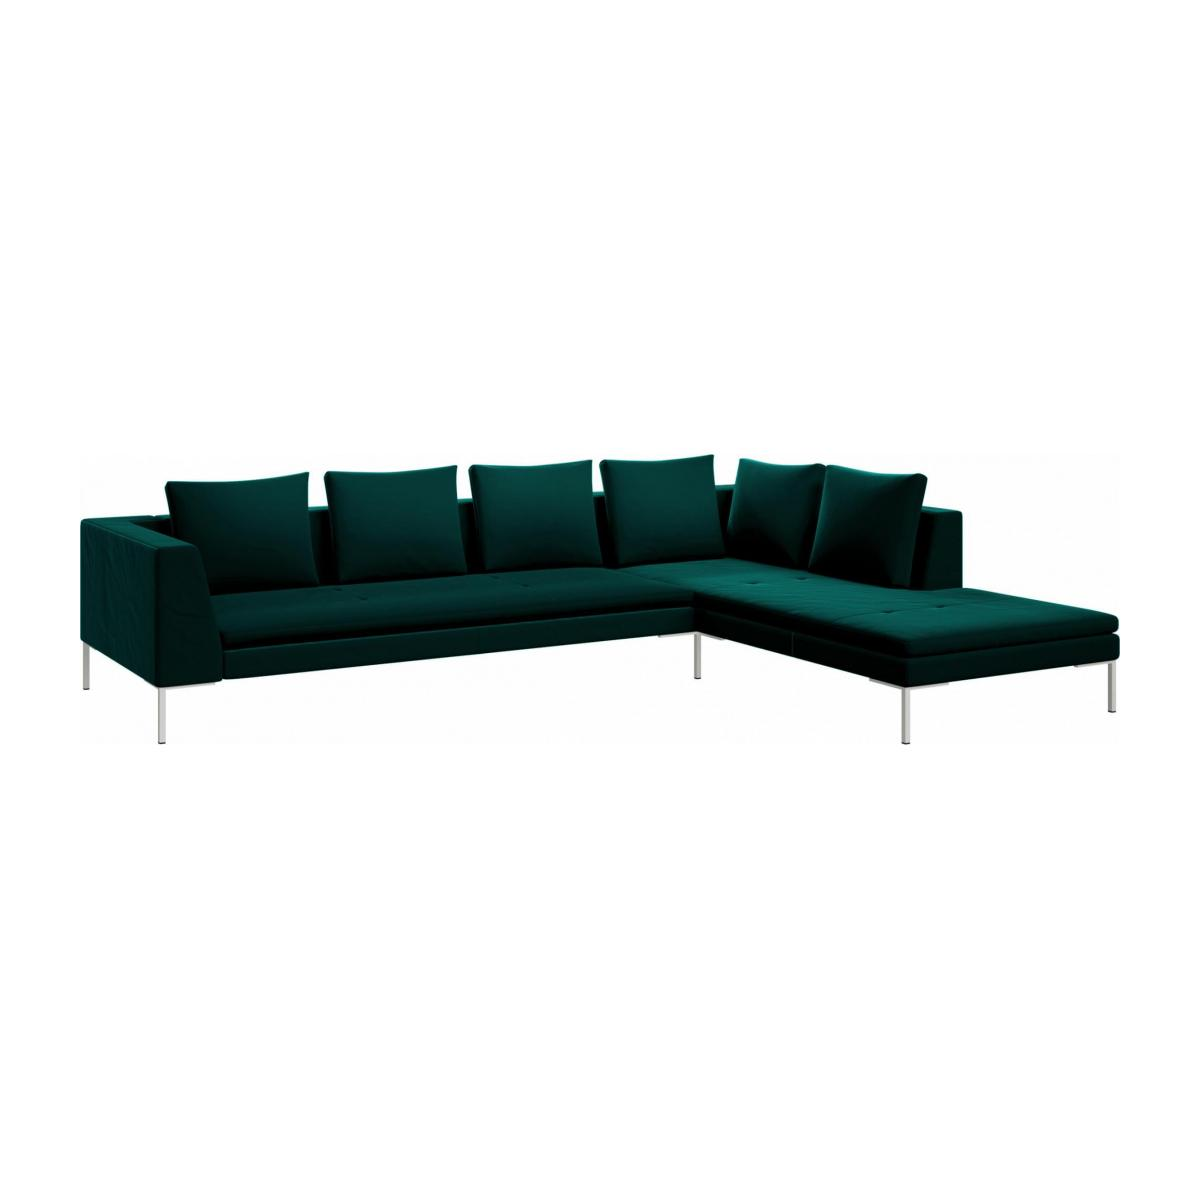 3 seater sofa with chaise longue on the right in Super Velvet fabric, petrol blue  n°2